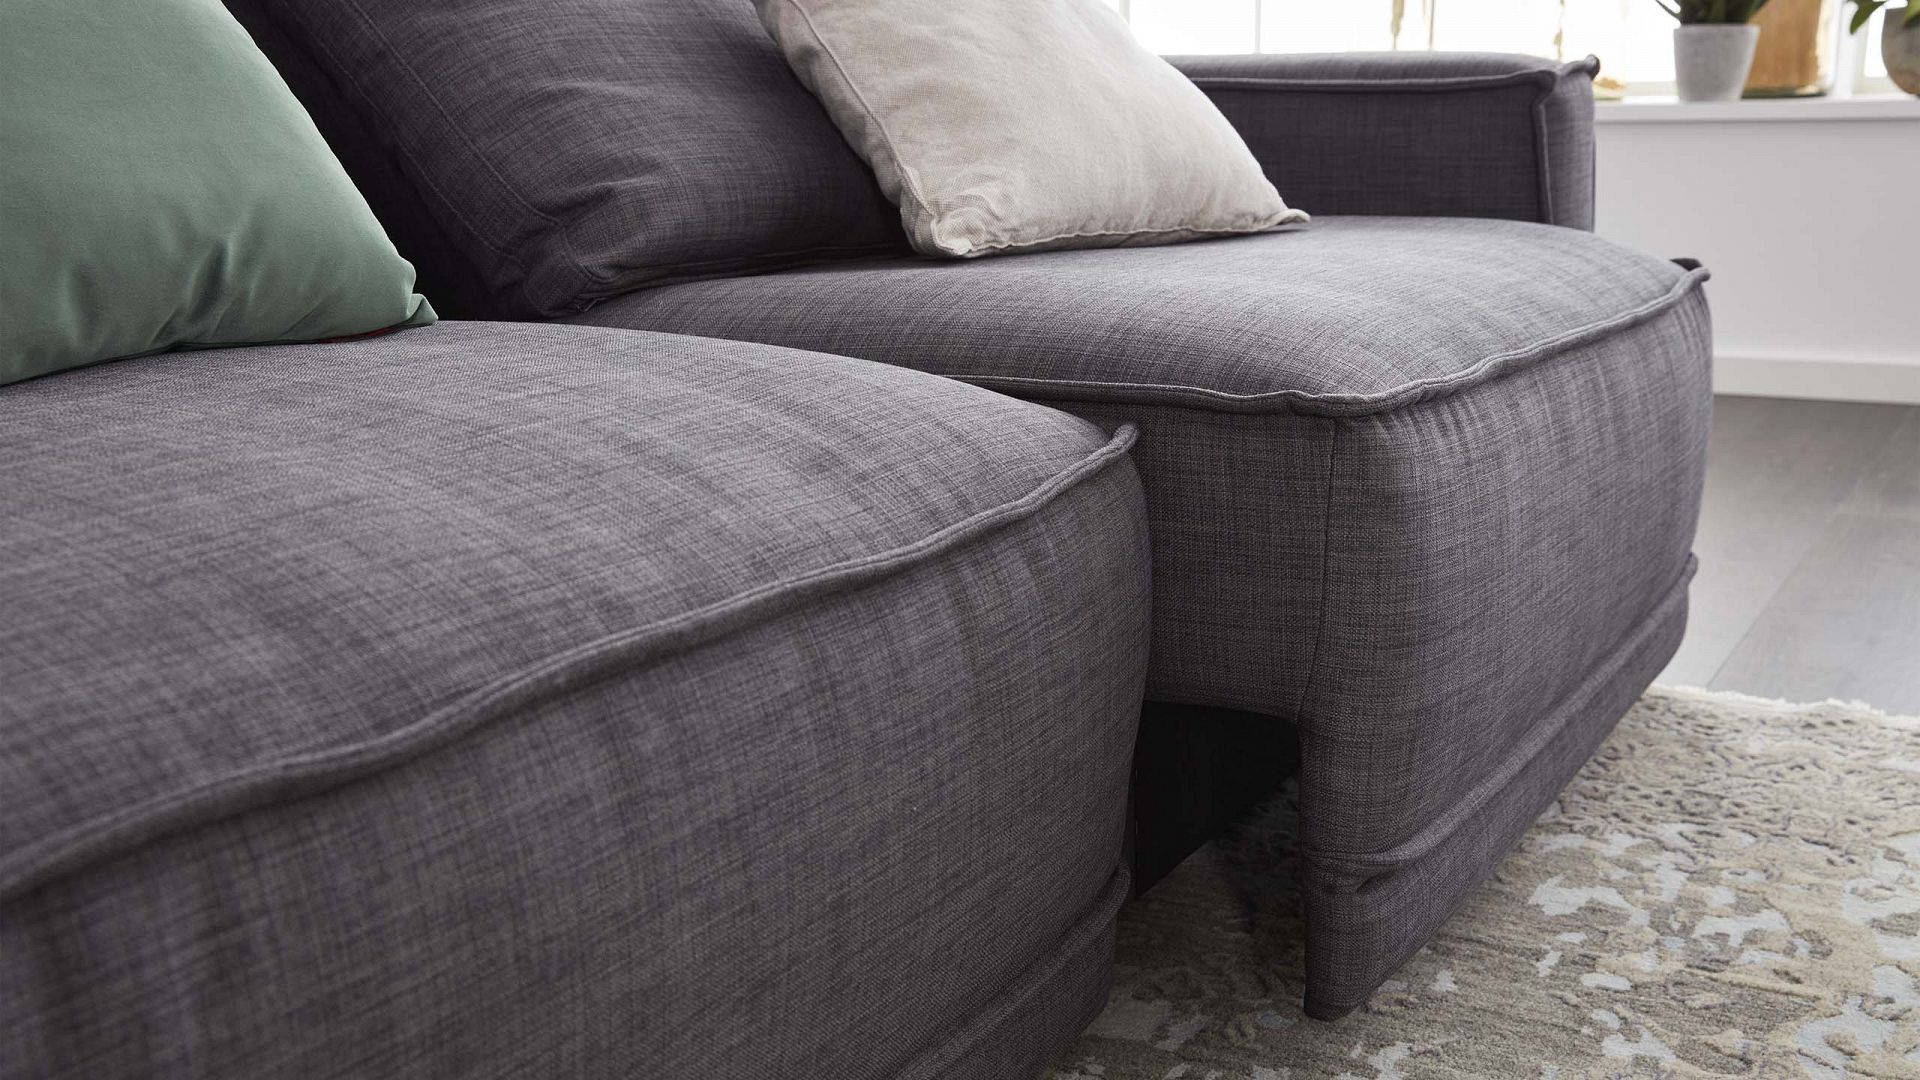 Interliving Sofa Serie 4100